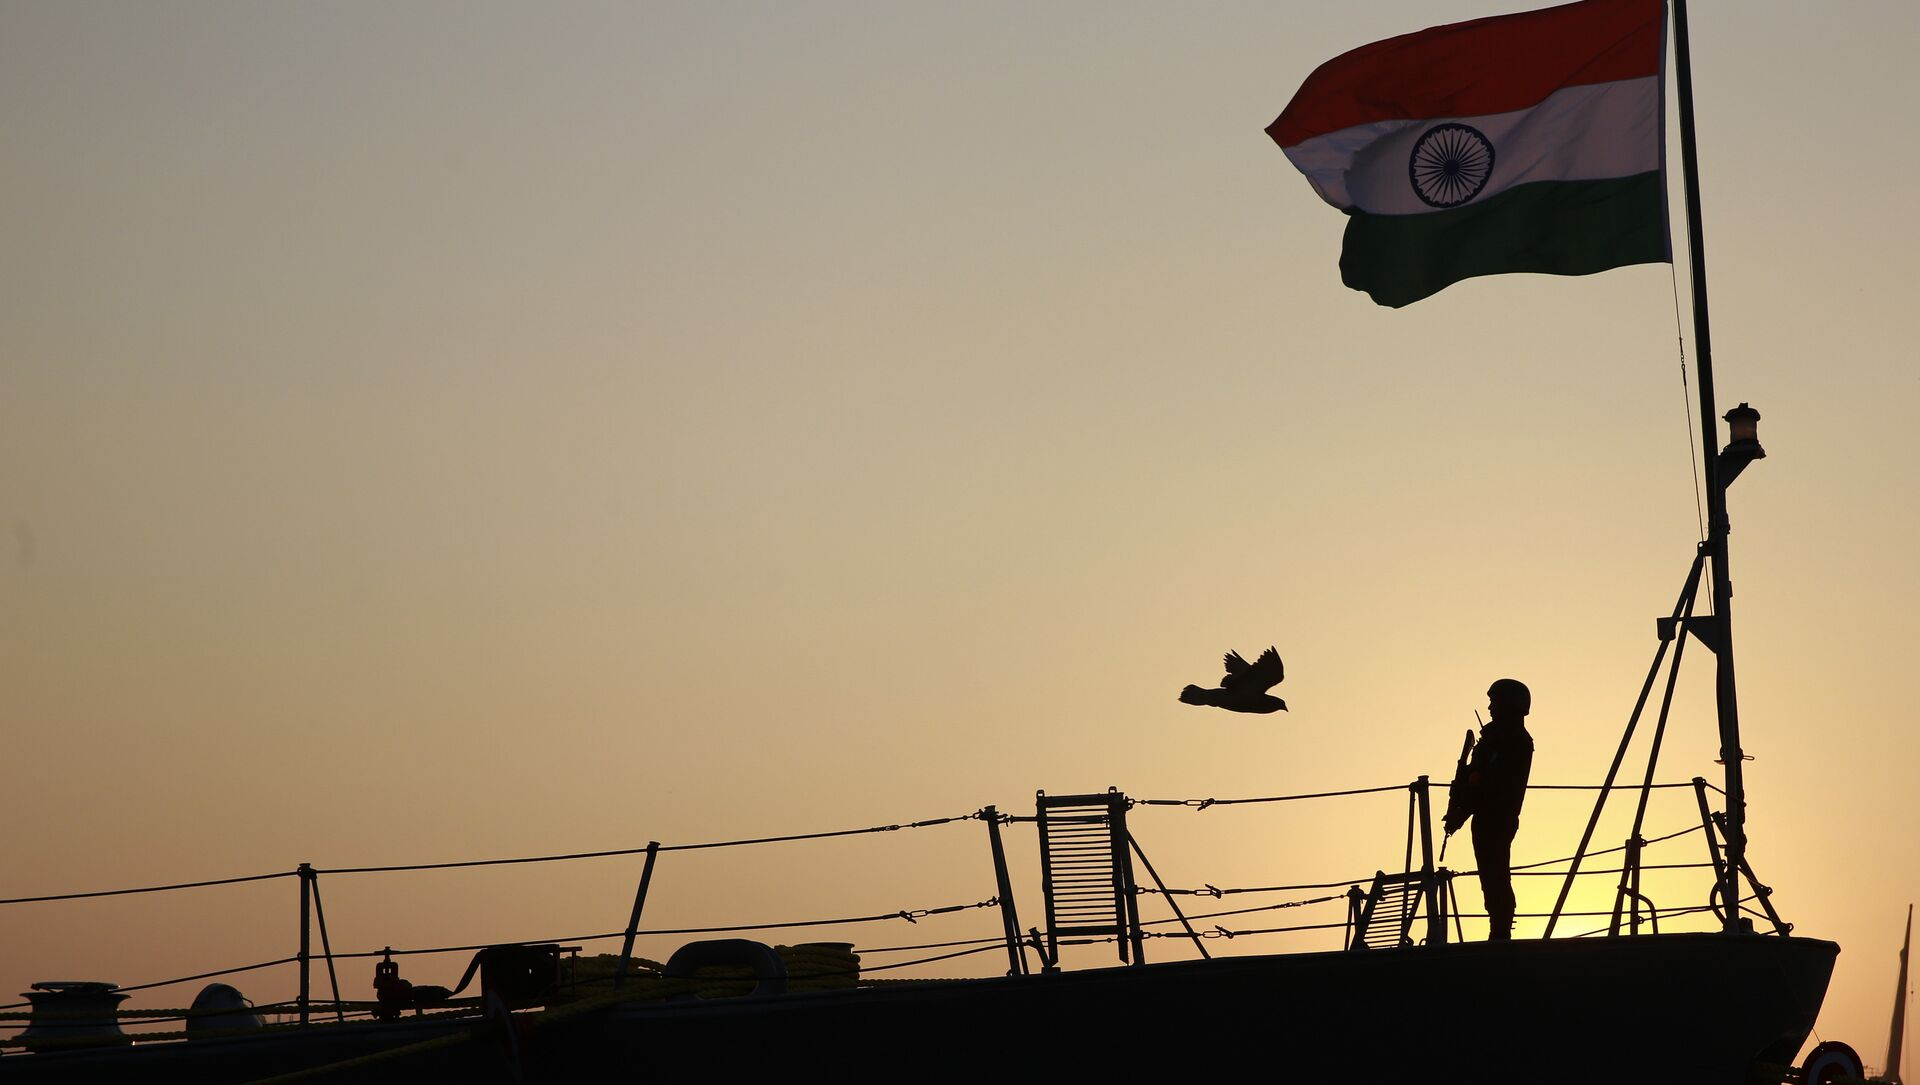 Indian navy person stands guard on board war ship Godavari during its decommissioning at the naval dockyard in Mumbai, India, Wednesday, Dec. 23, 2015 - Sputnik International, 1920, 04.08.2021